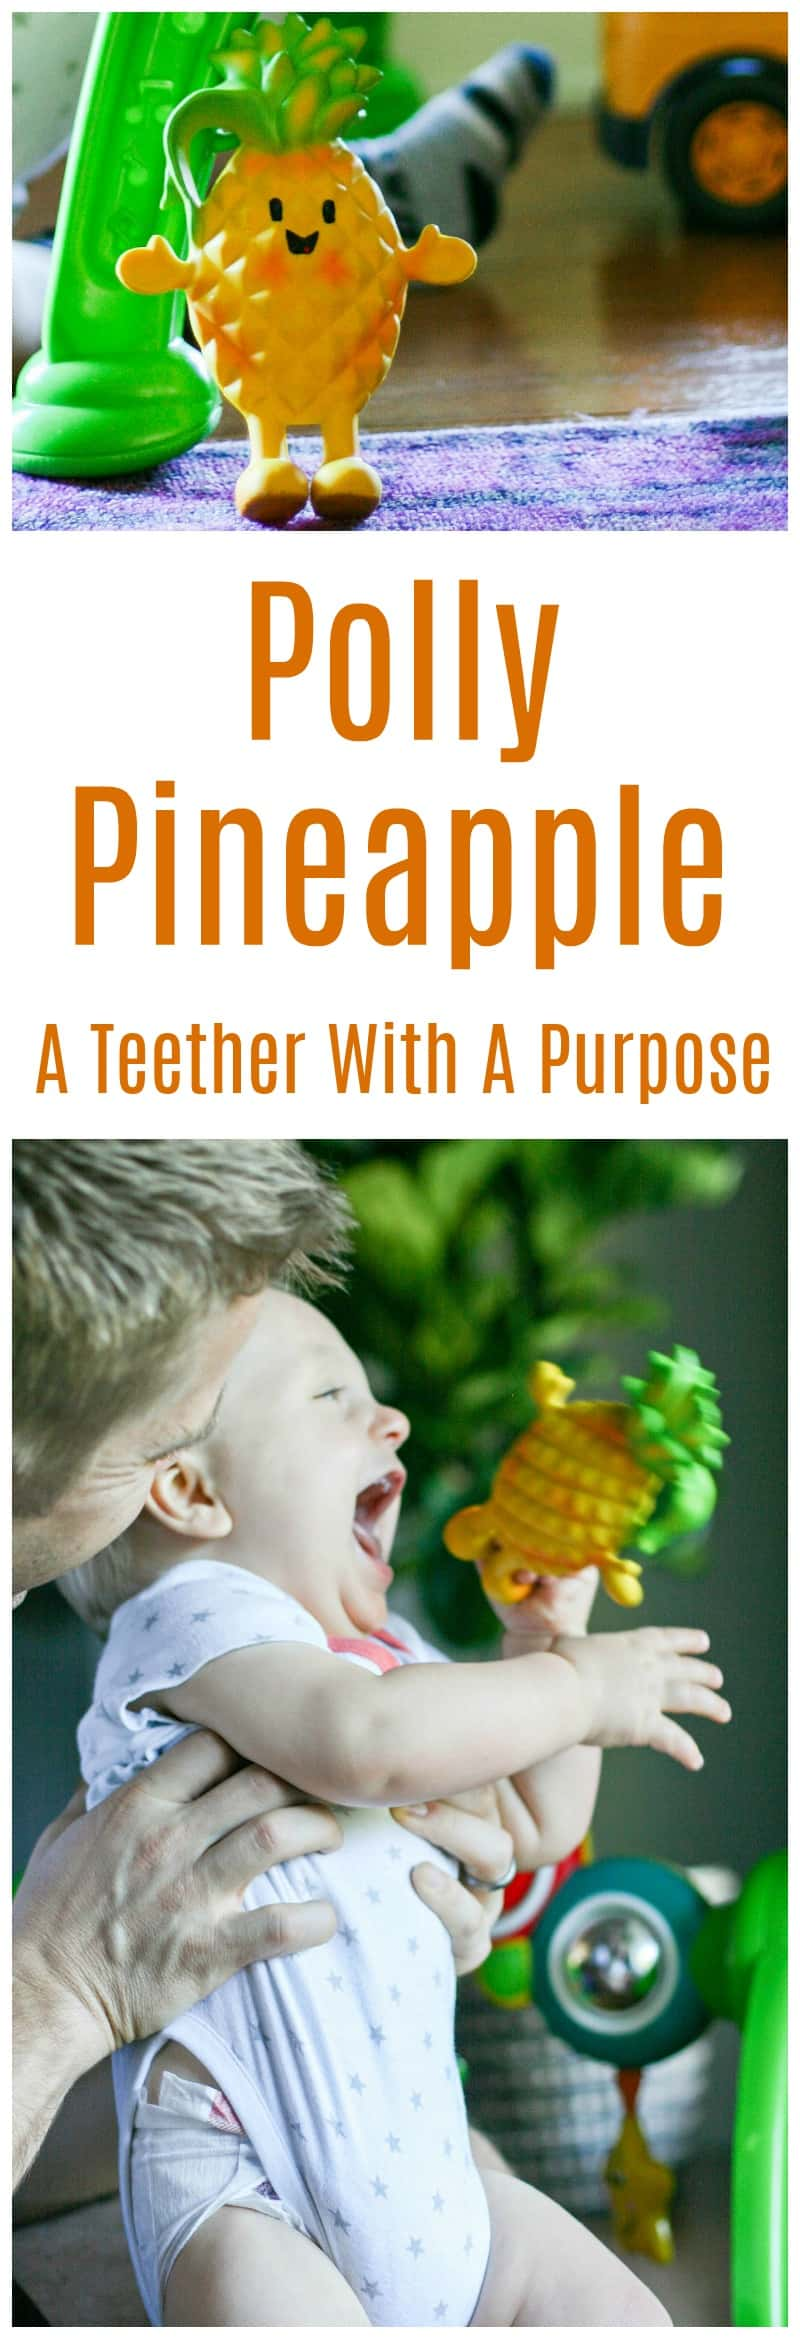 Polly Pineapple - A Teether With A Purpose